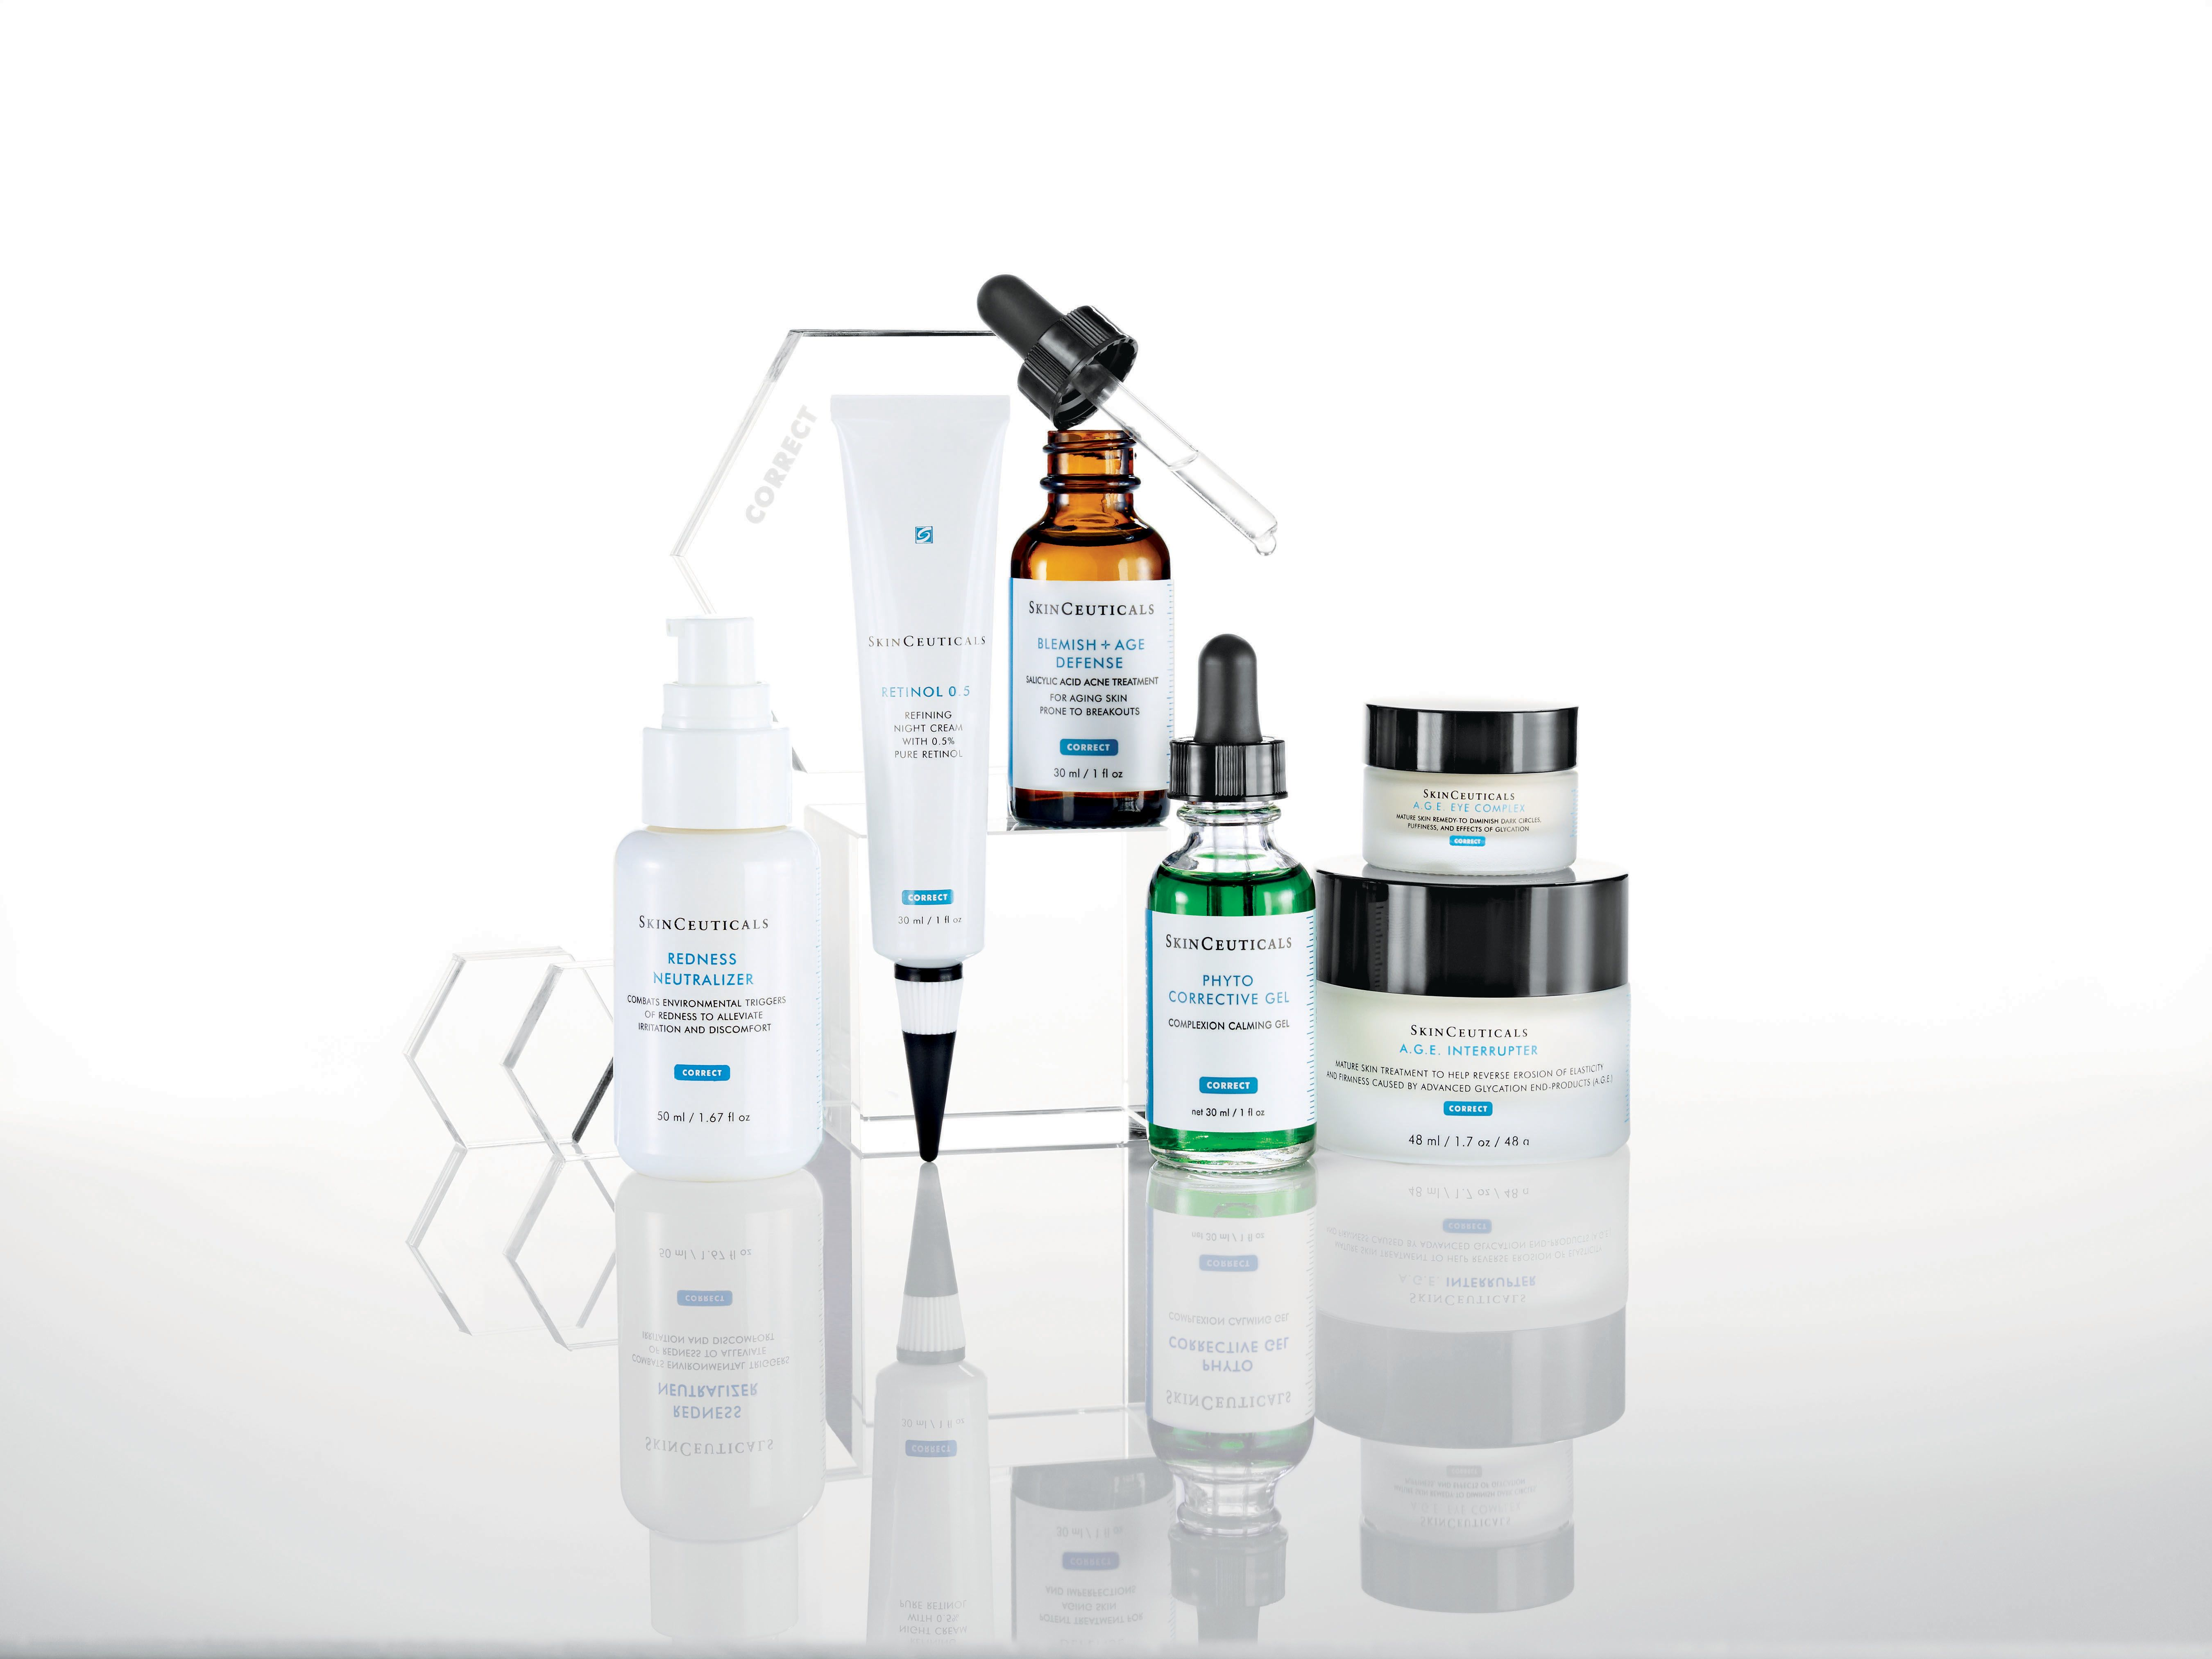 Photo of SkinCeuticals products